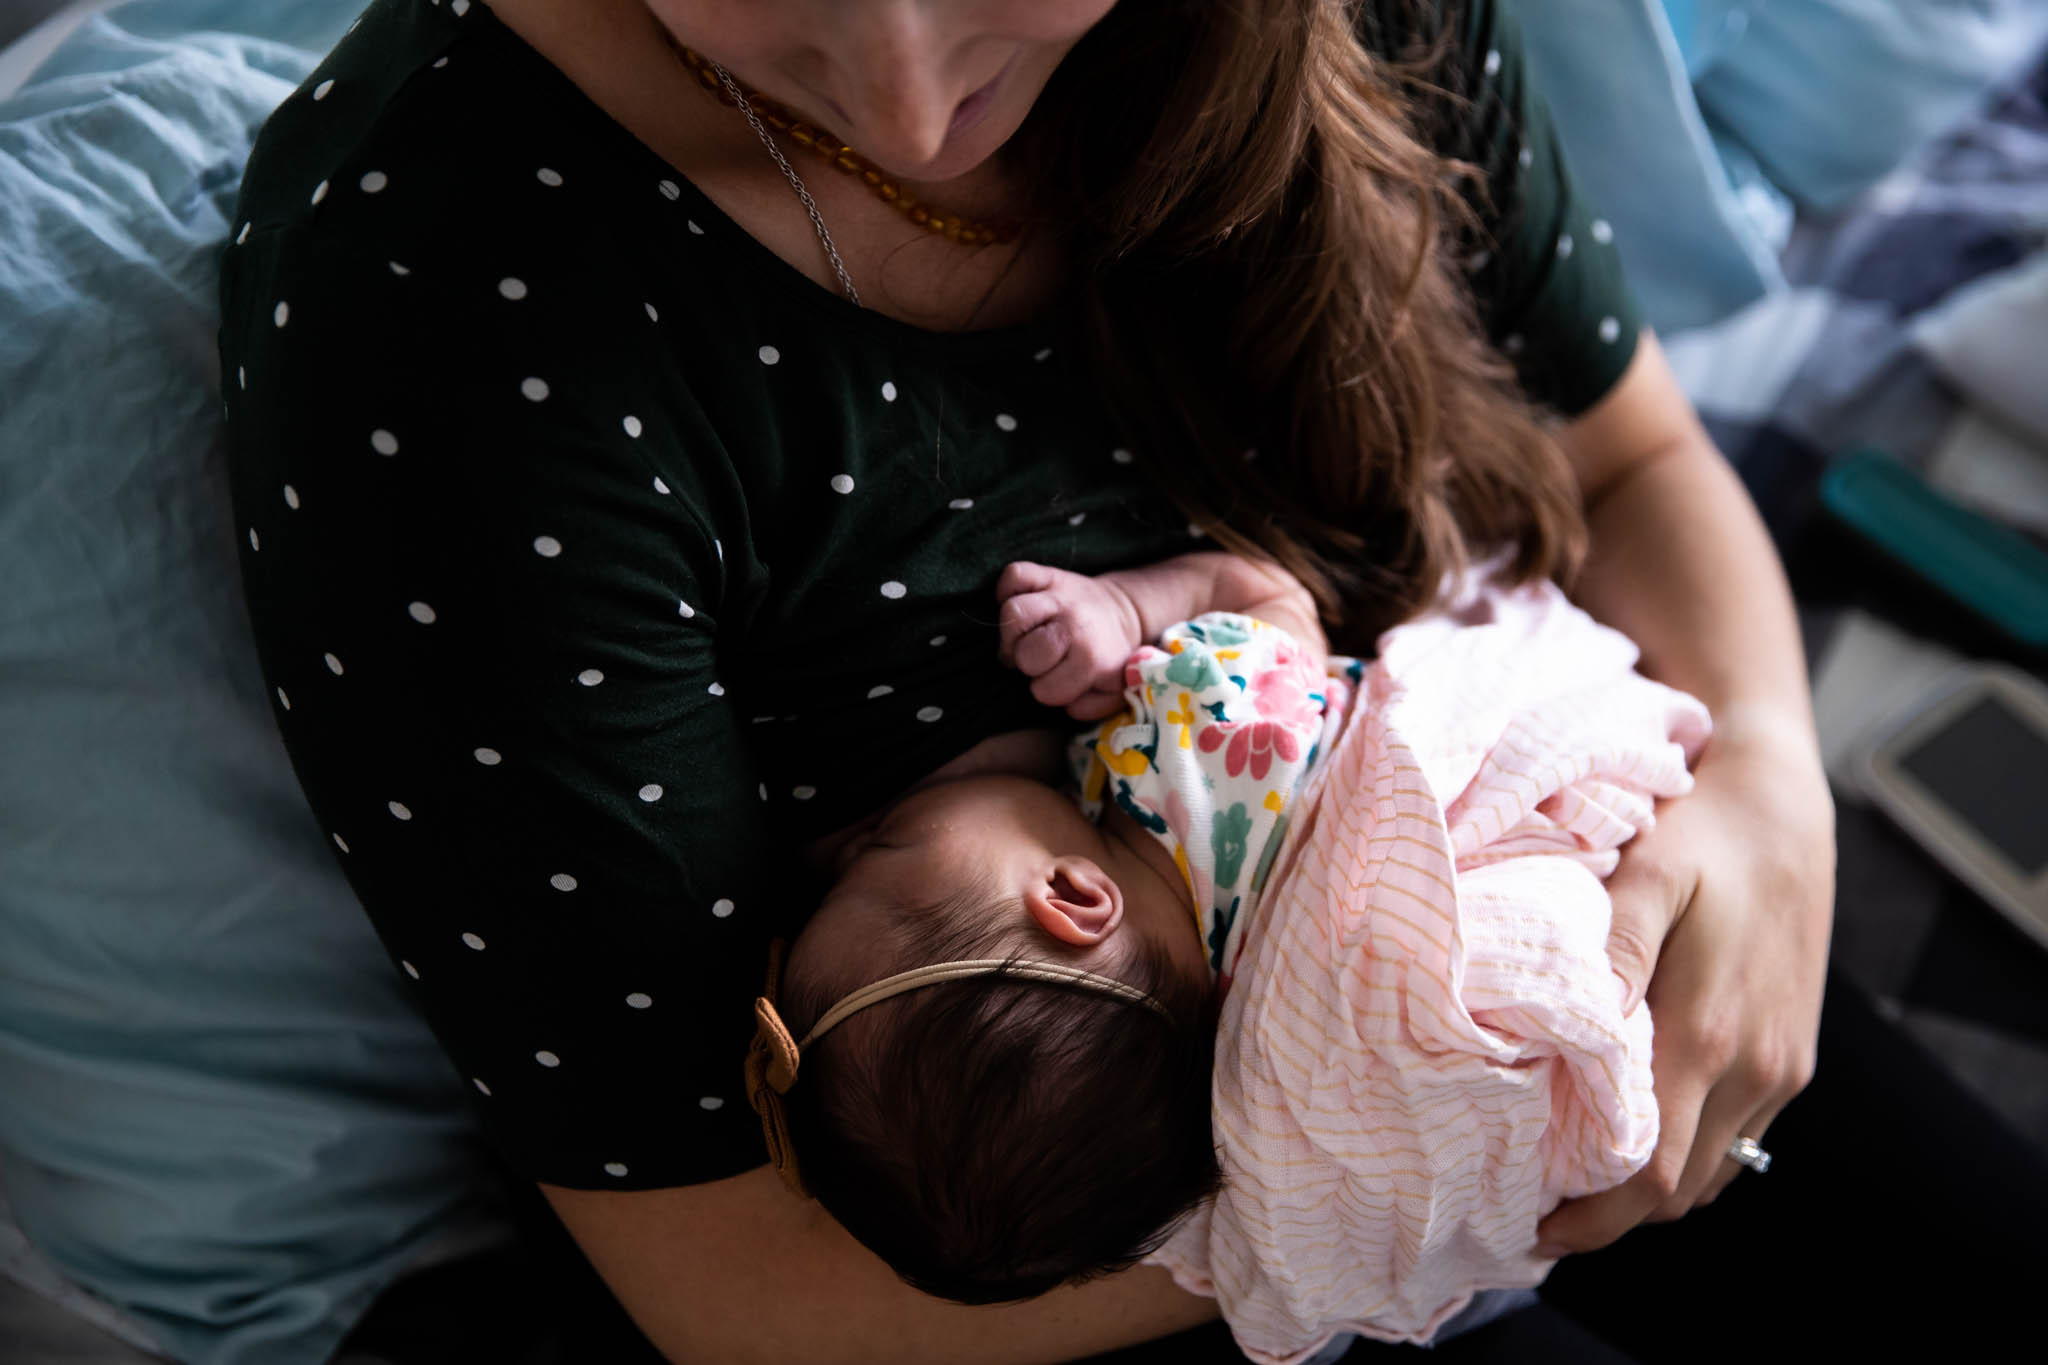 Documentary family photographer, Lawren Rose Photography, captures a sweet moment with a newborn breastfeeding